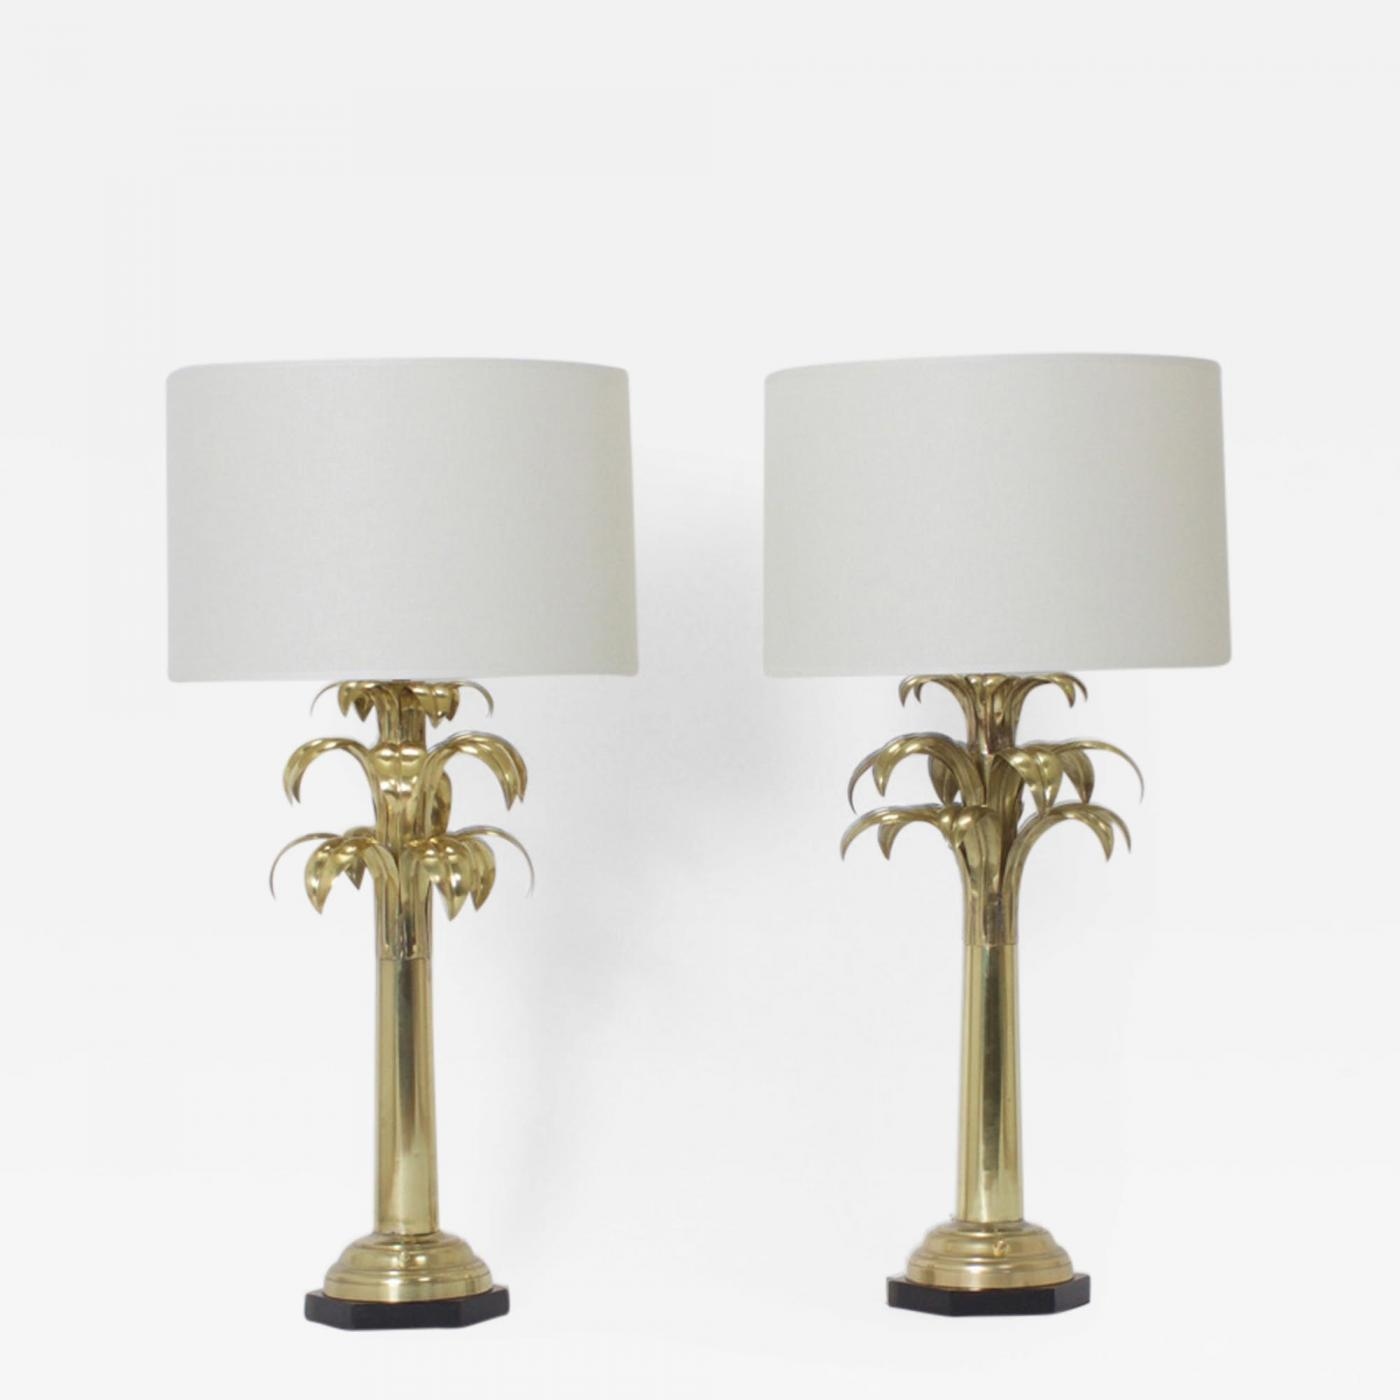 Pair of brass palm tree table lamps listings furniture lighting table lamps geotapseo Image collections